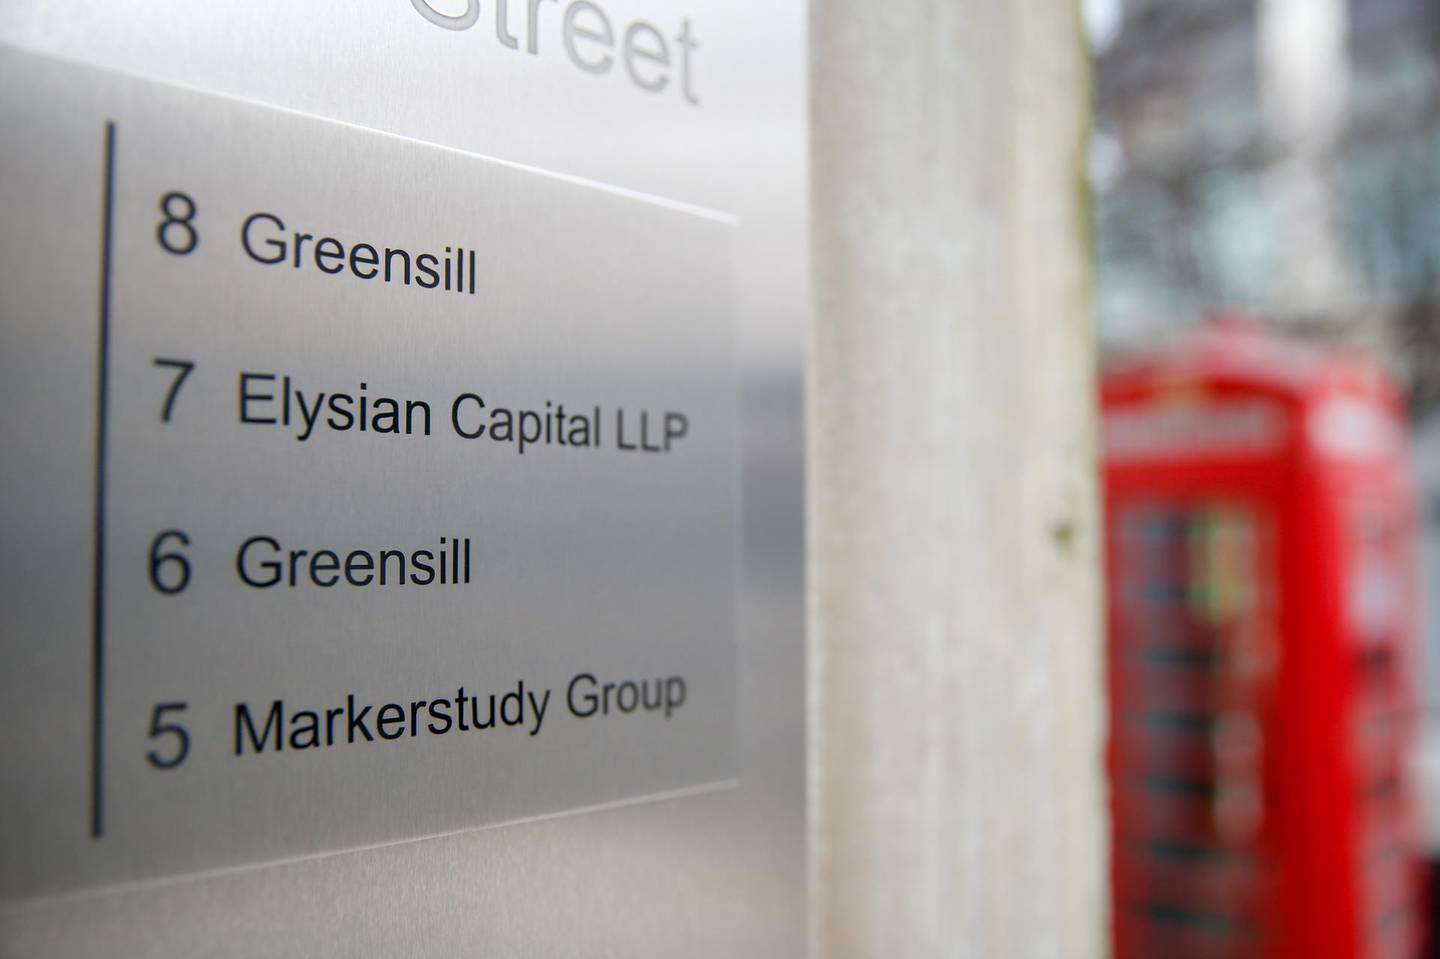 A sign at the building housing the headquarters of Greensill Capital in London, U.K., on Wednesday, March 3, 2021. Greensillis in the process of filing for insolvency in the U.K. after a swift crisis of confidence deprived it of major buyers of the loans it made and regulators stepped in to oversee its German bank. Photographer: Hollie Adams/Bloomberg